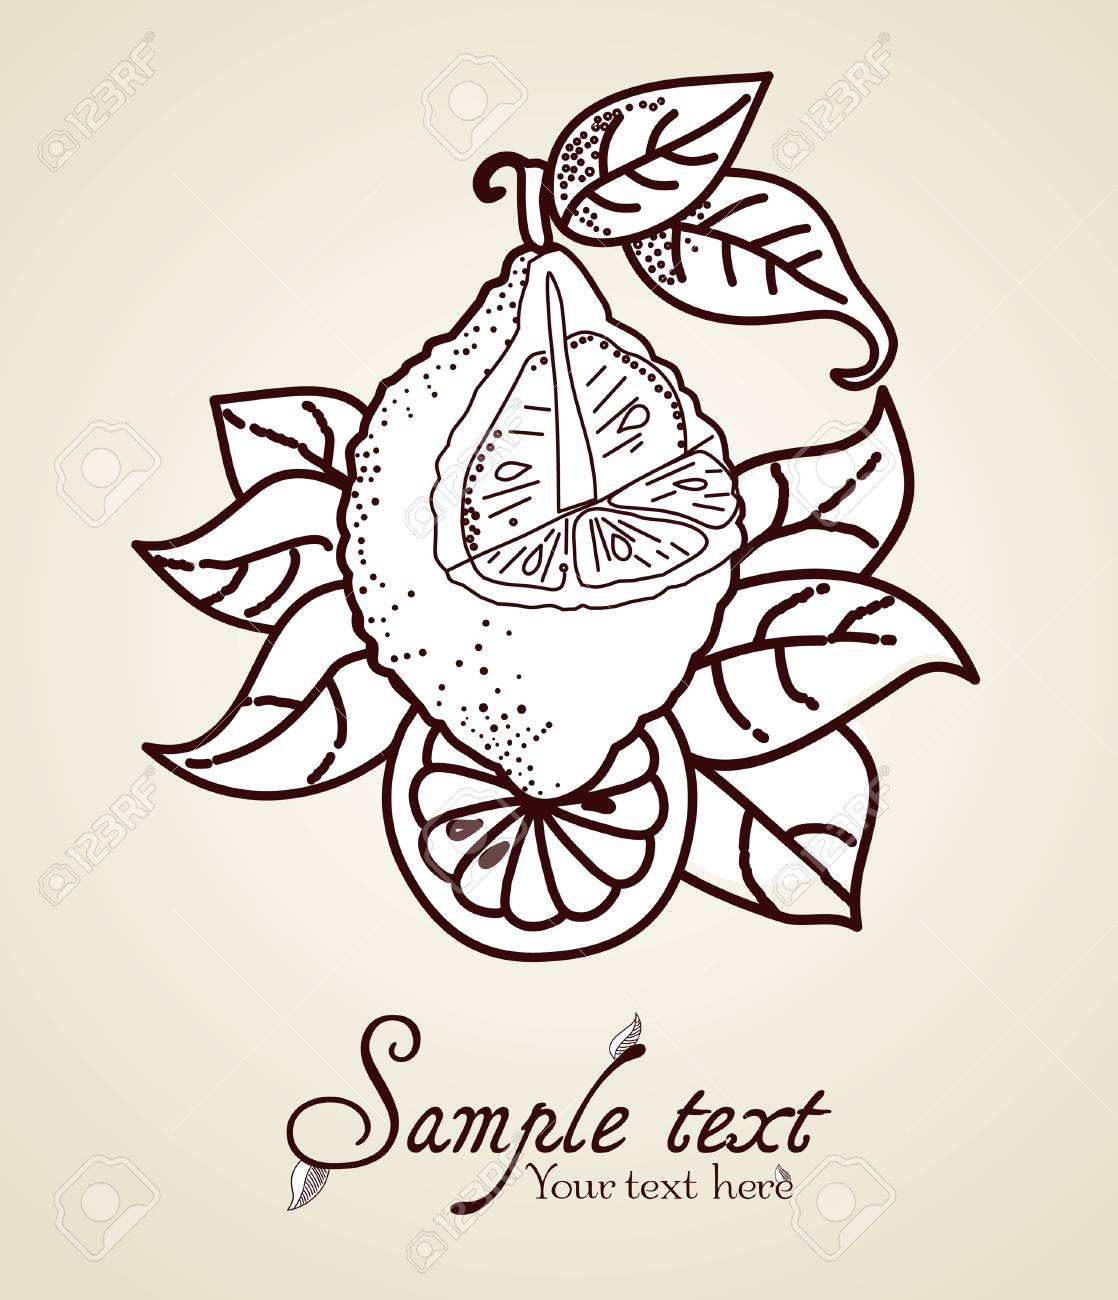 Hand-drawn fruit icon with text Stock Vector - 13222824